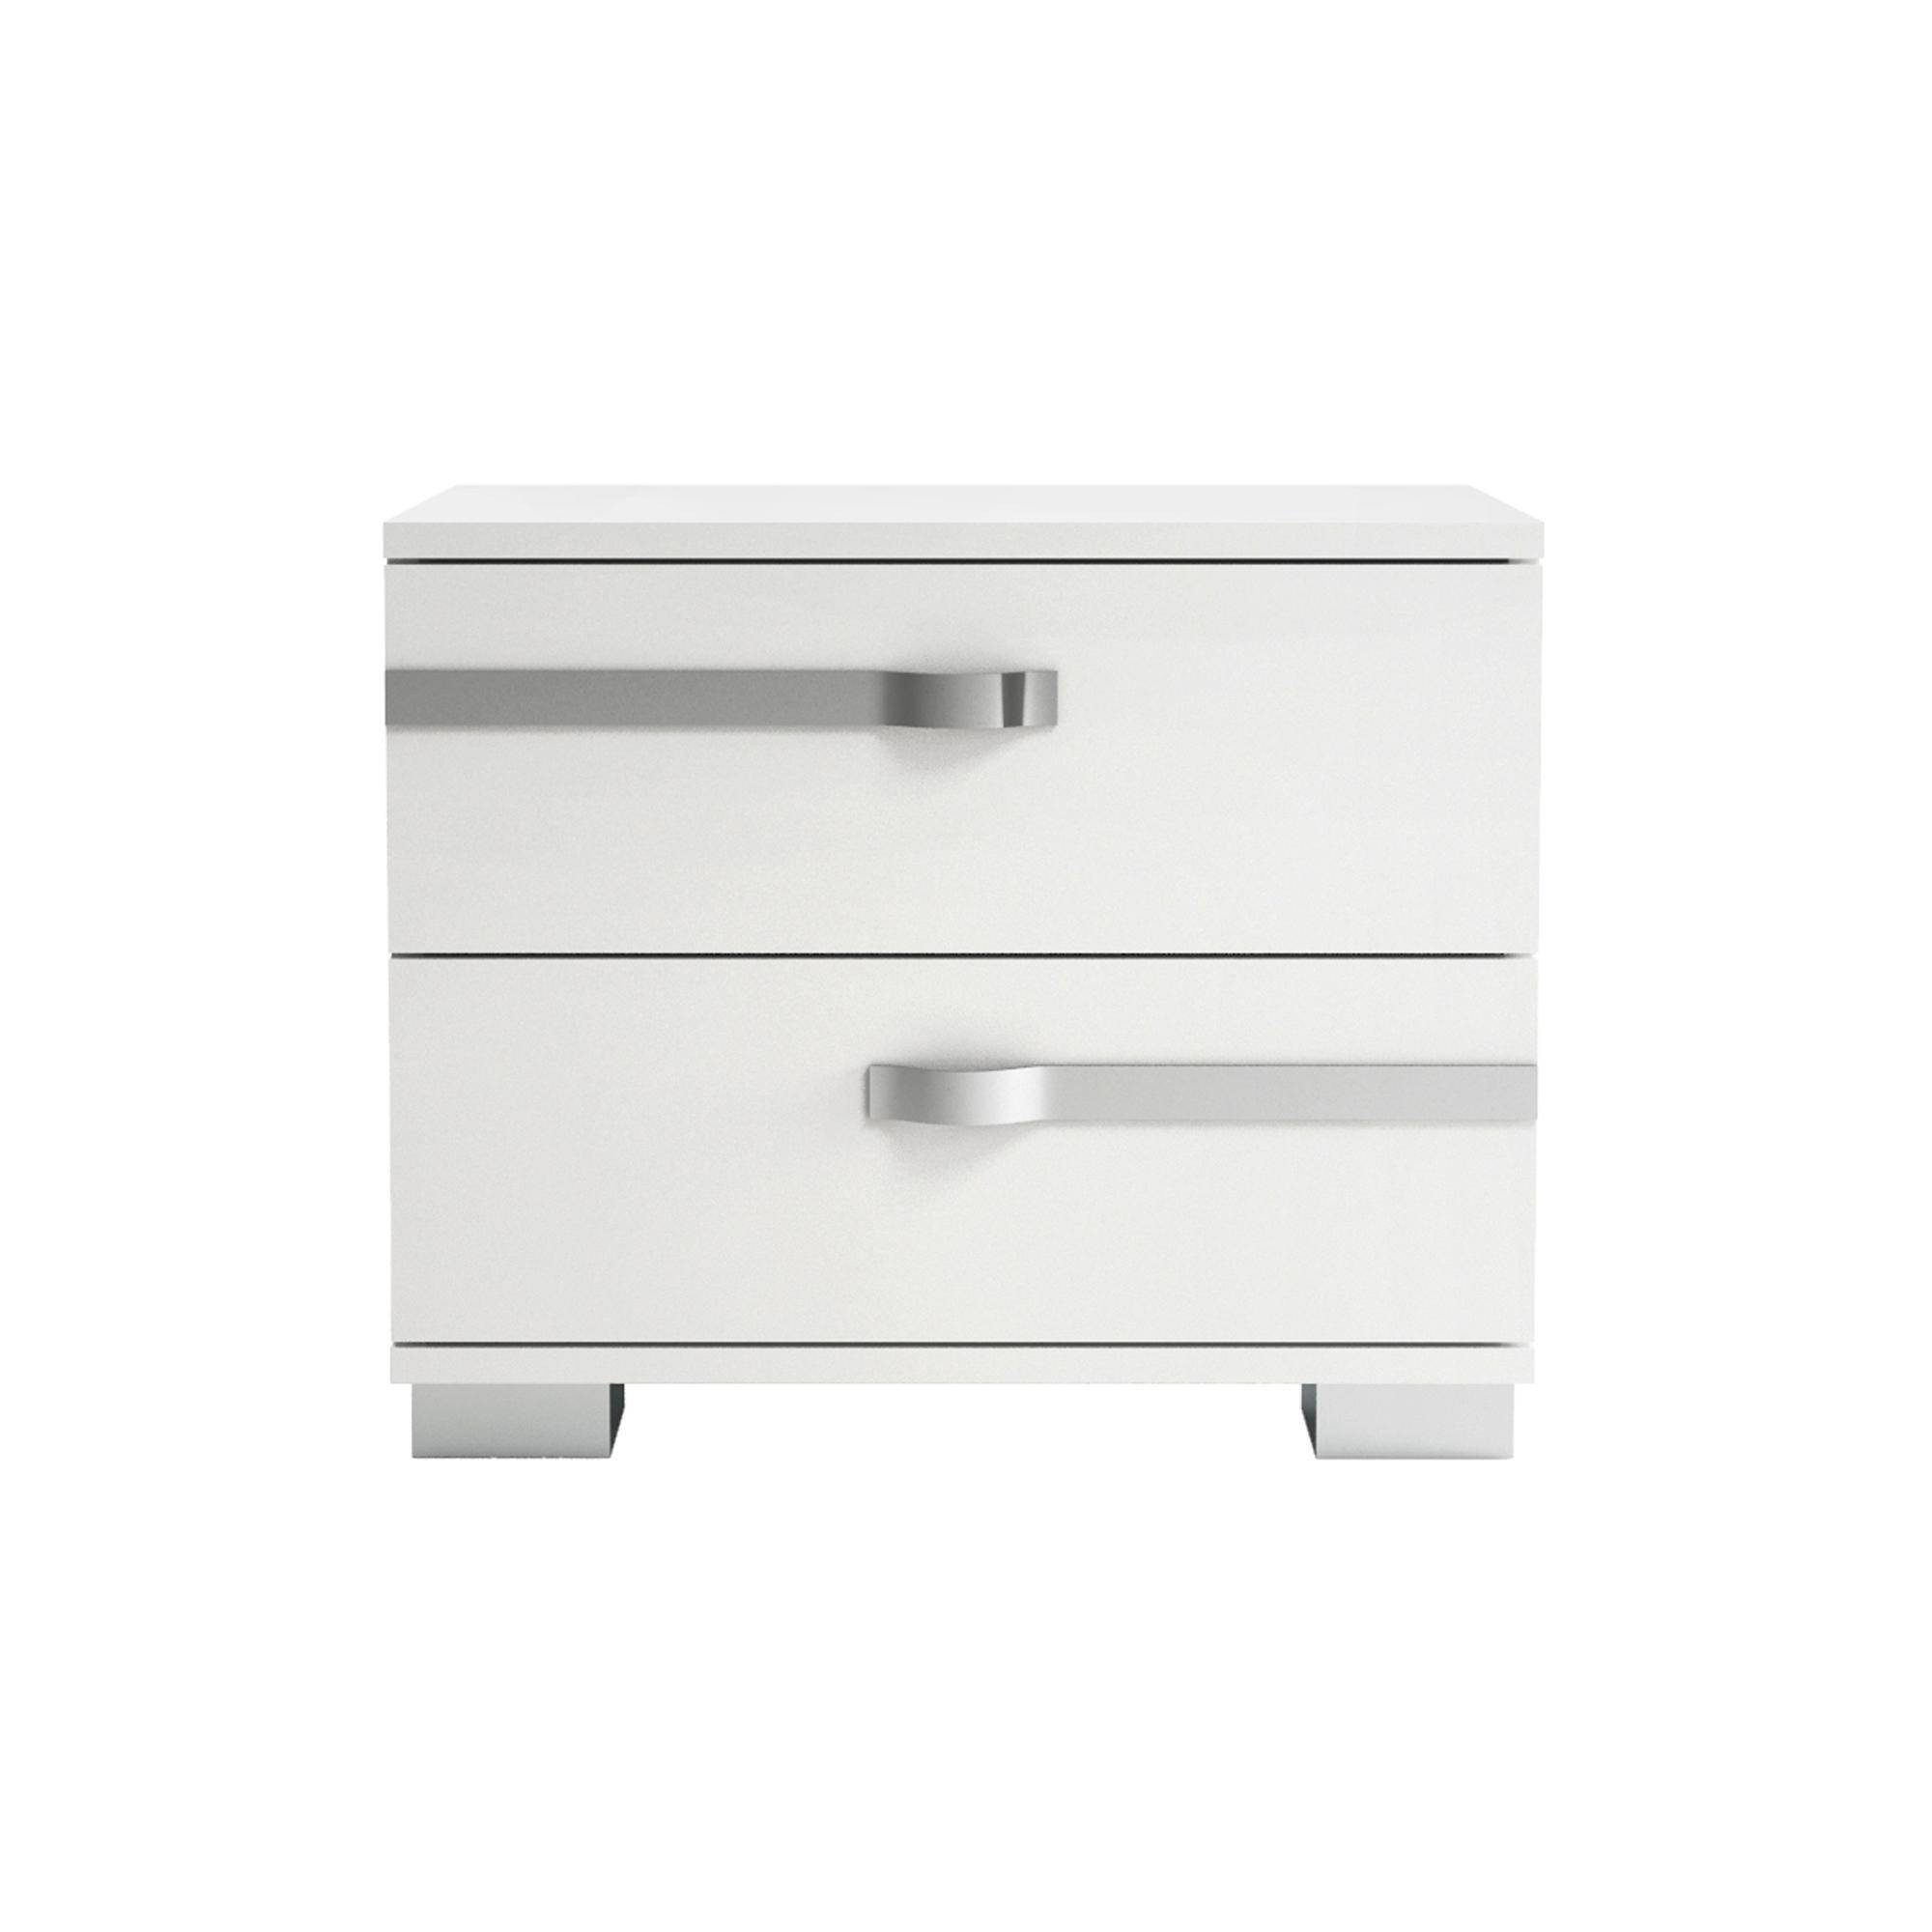 Bedroom Dressers On Sale Unique Glossy White King Bedroom Set 5pcs Modern Made In Italy at